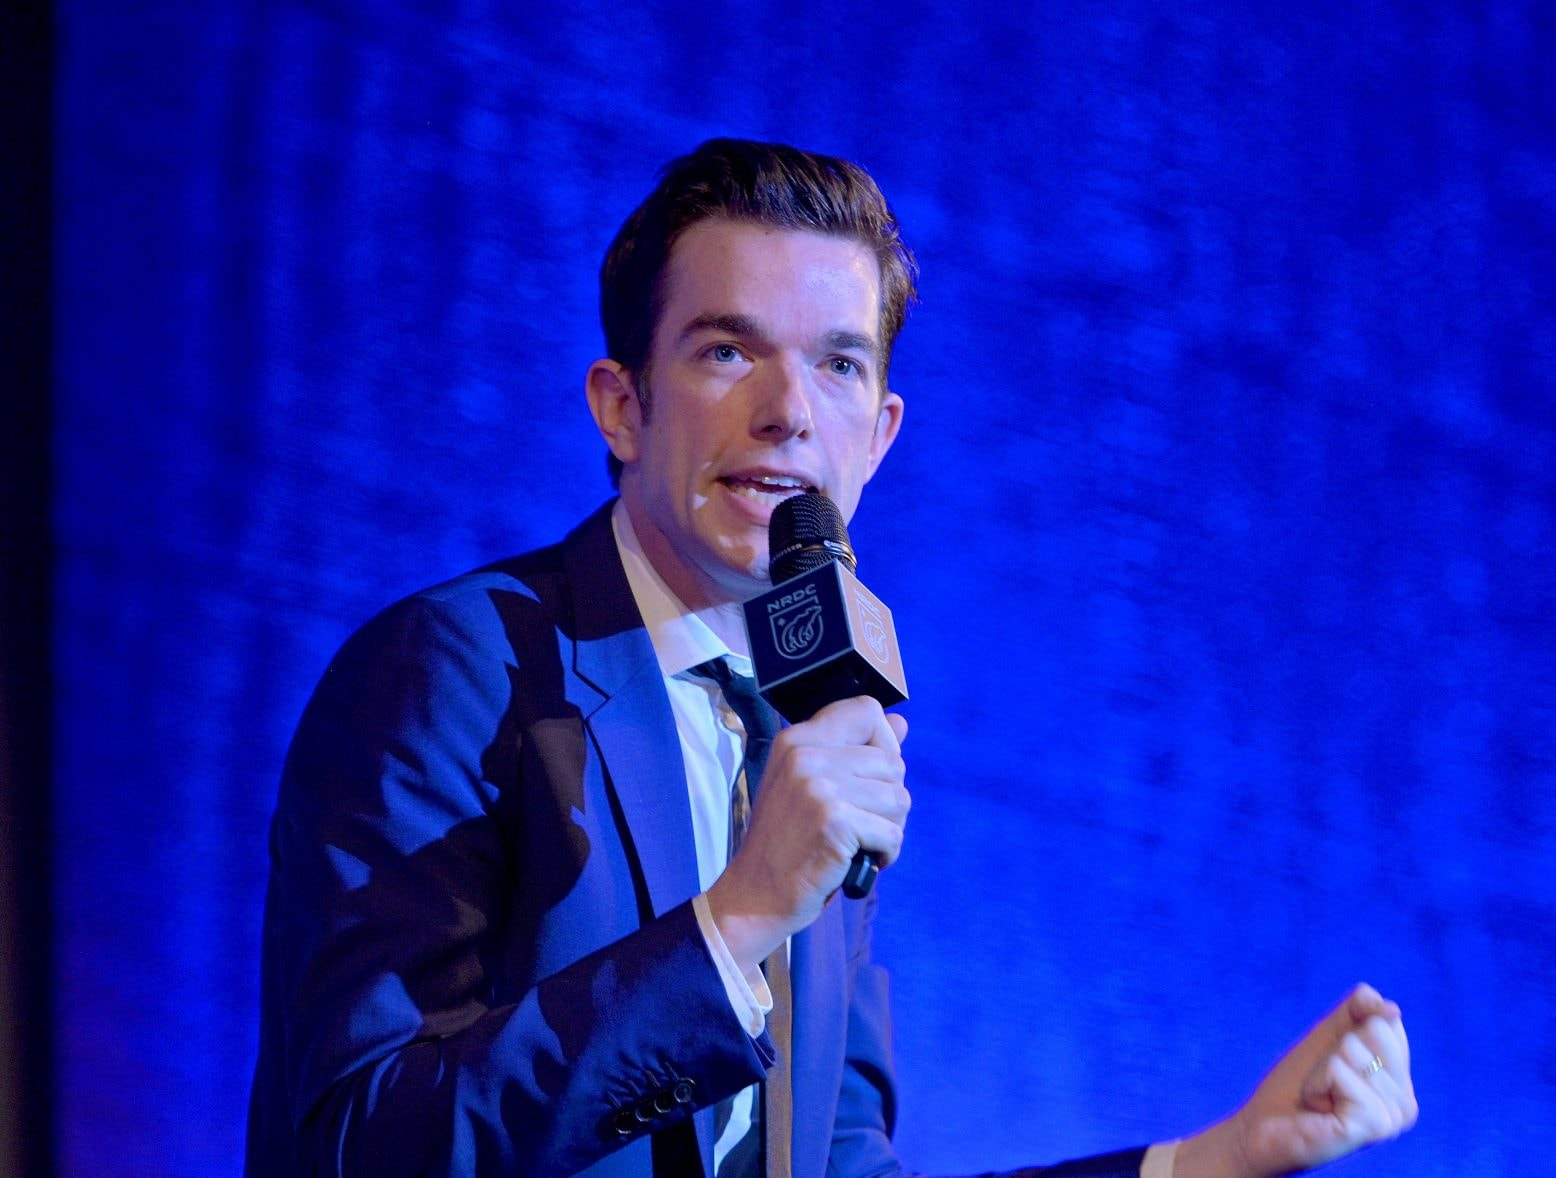 John Mulaney Is Out Of Rehab; Not Yet Ready To Work - wmgk.com